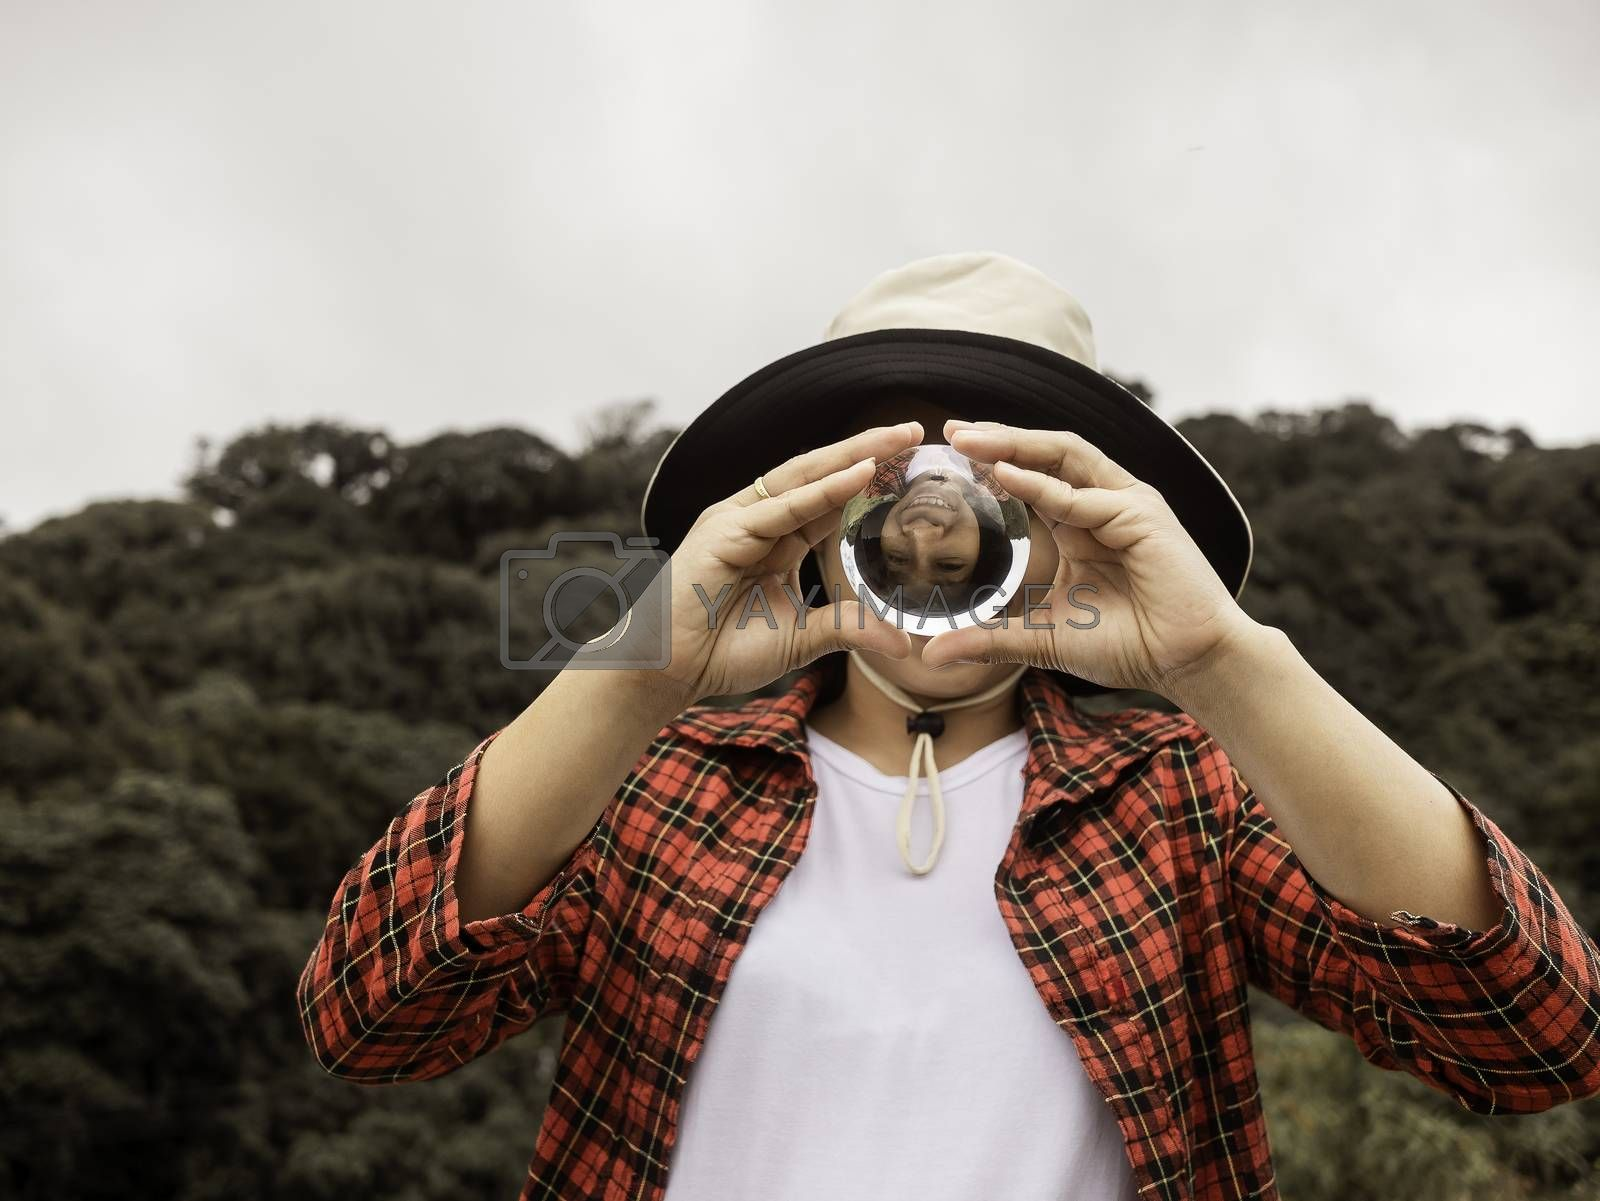 Asian woman  holding and look into a magic crystal glass ball on nature background.